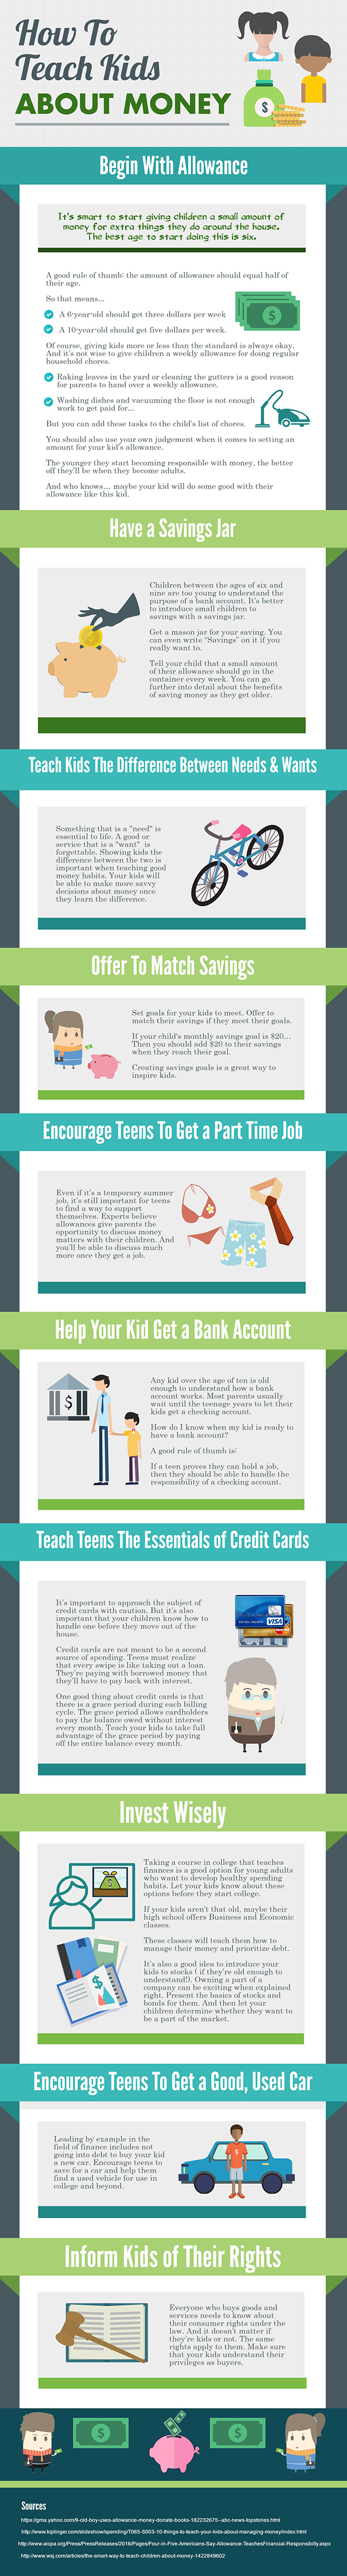 How To Teach Your Kids About Money - Infographic